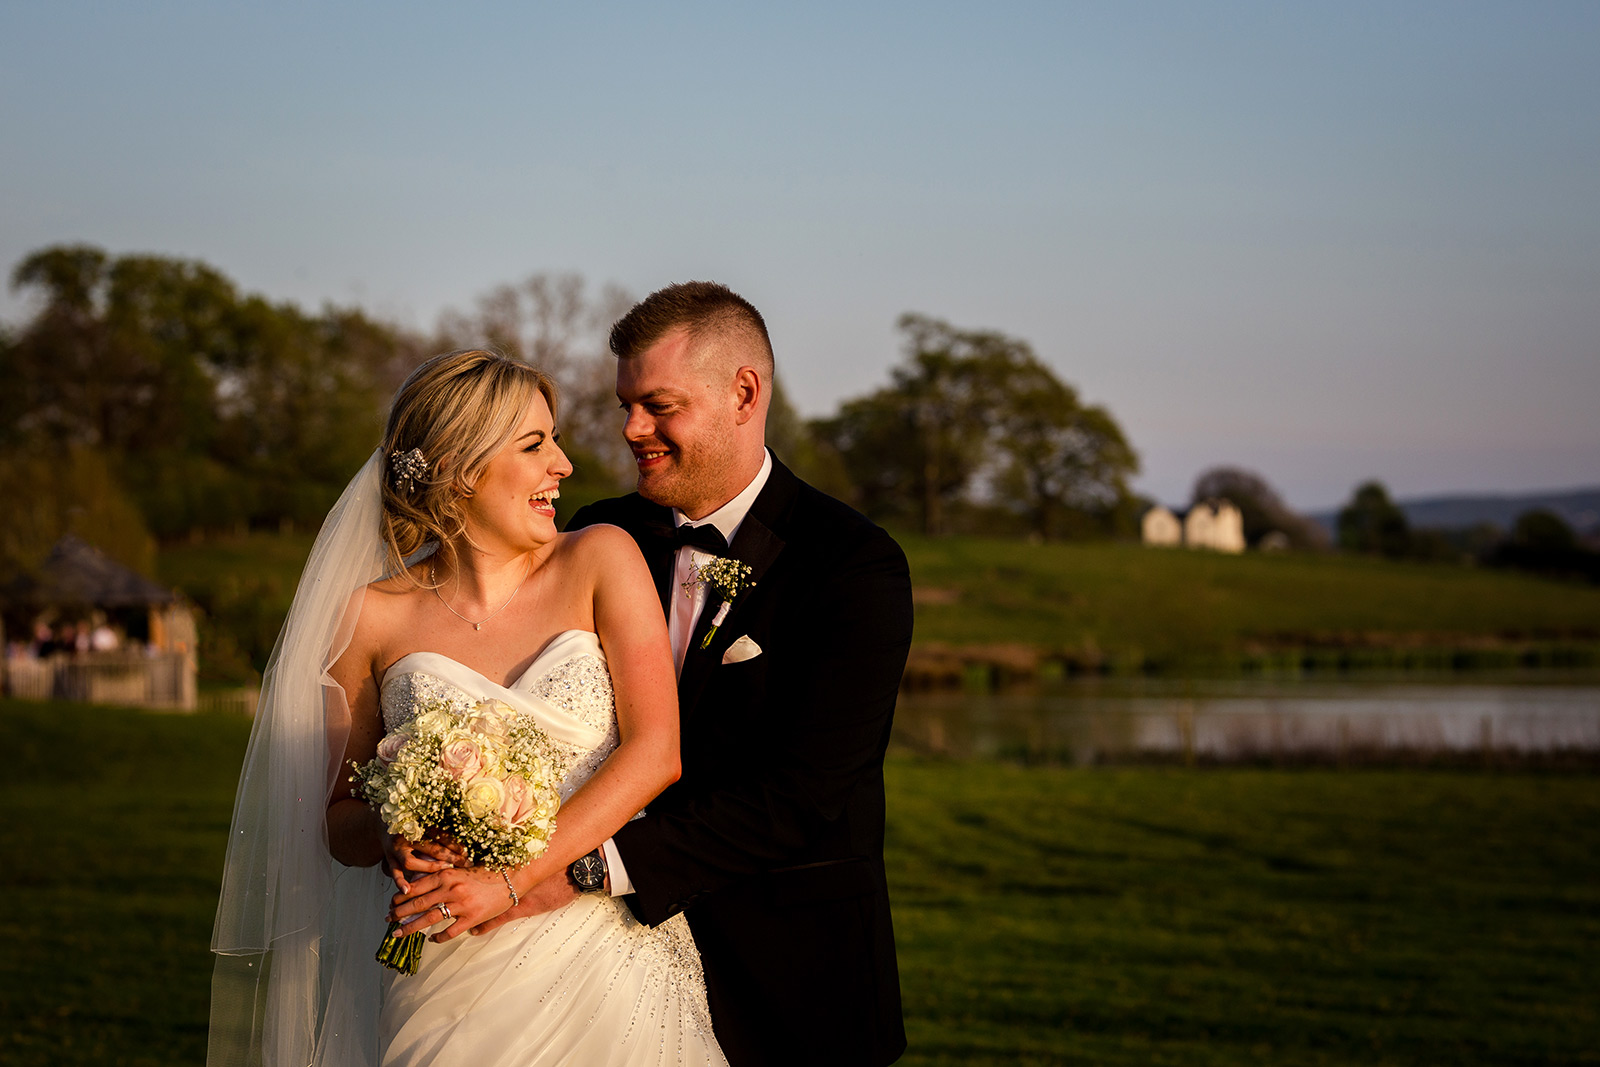 Bride and groom at their Sandhole Oak Barn Wedding